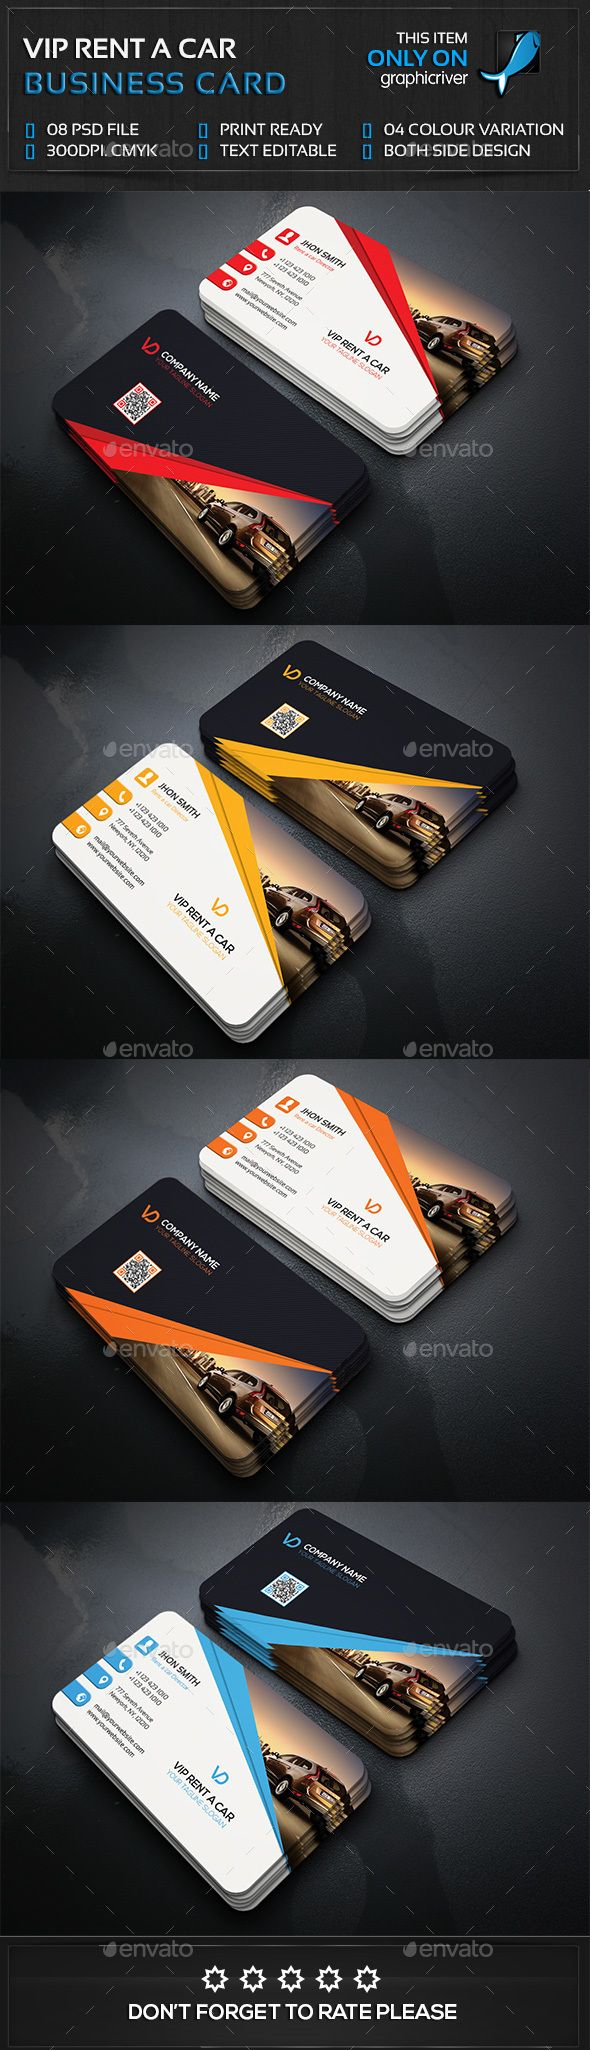 Rent a car business card pho business card template design by rent a car business card photoshop psd modern high quality available here httpsgraphicriveritemrent a car business card 14837944refpxcr reheart Choice Image